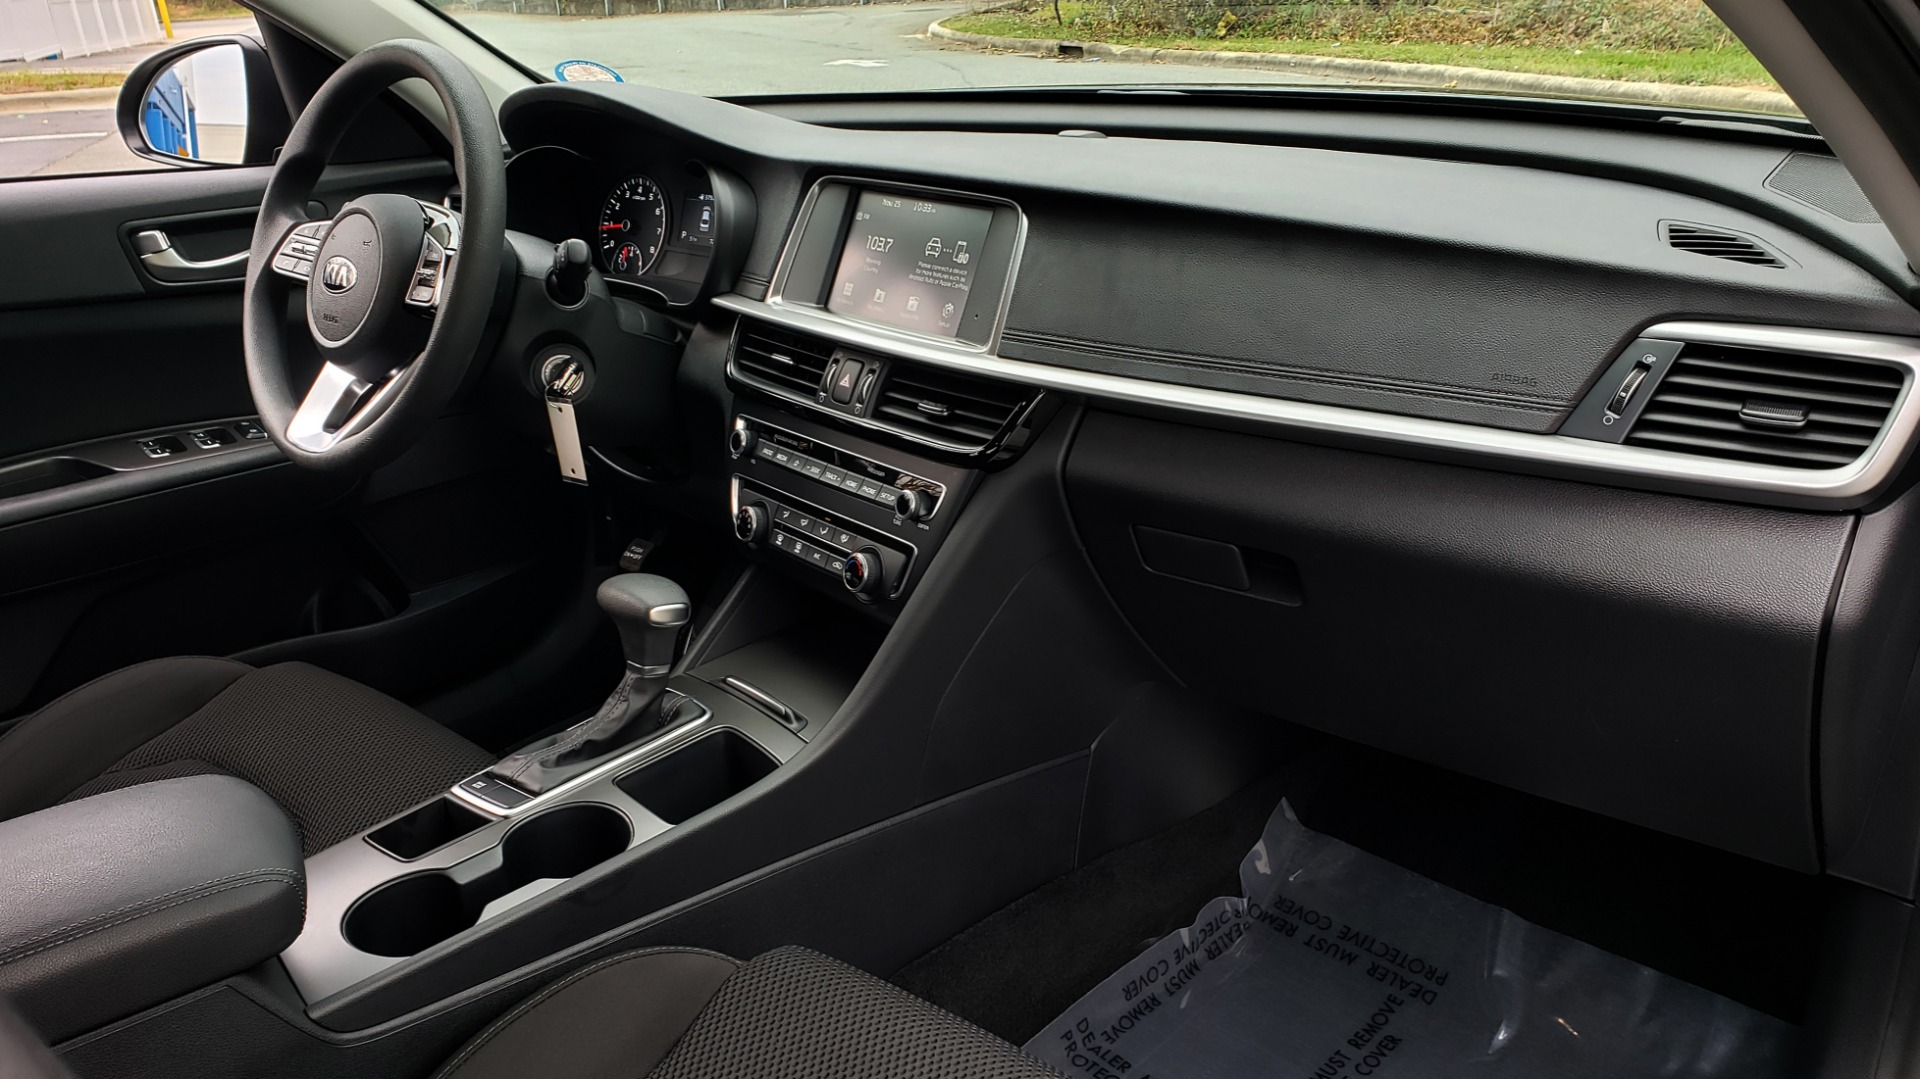 Used 2019 Kia OPTIMA LX AUTO / 2.4L 4-CYL / 6-SPD AUTO / REARVIEW / LOW MILES for sale $17,995 at Formula Imports in Charlotte NC 28227 63